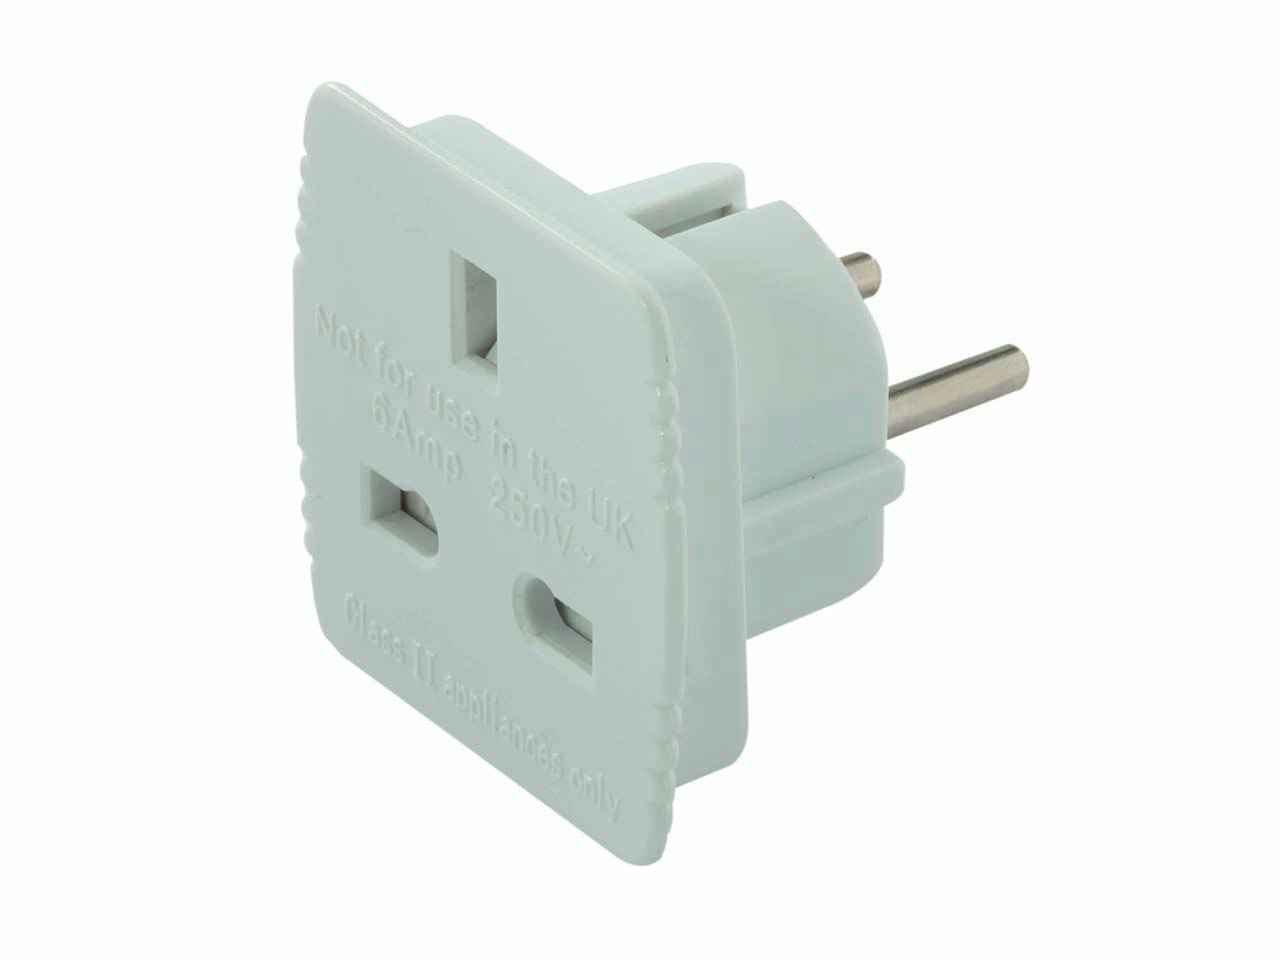 Travel Adapter Eu To Uk Power Master 171631 Uk To Eu Travel Adaptor 220 240v